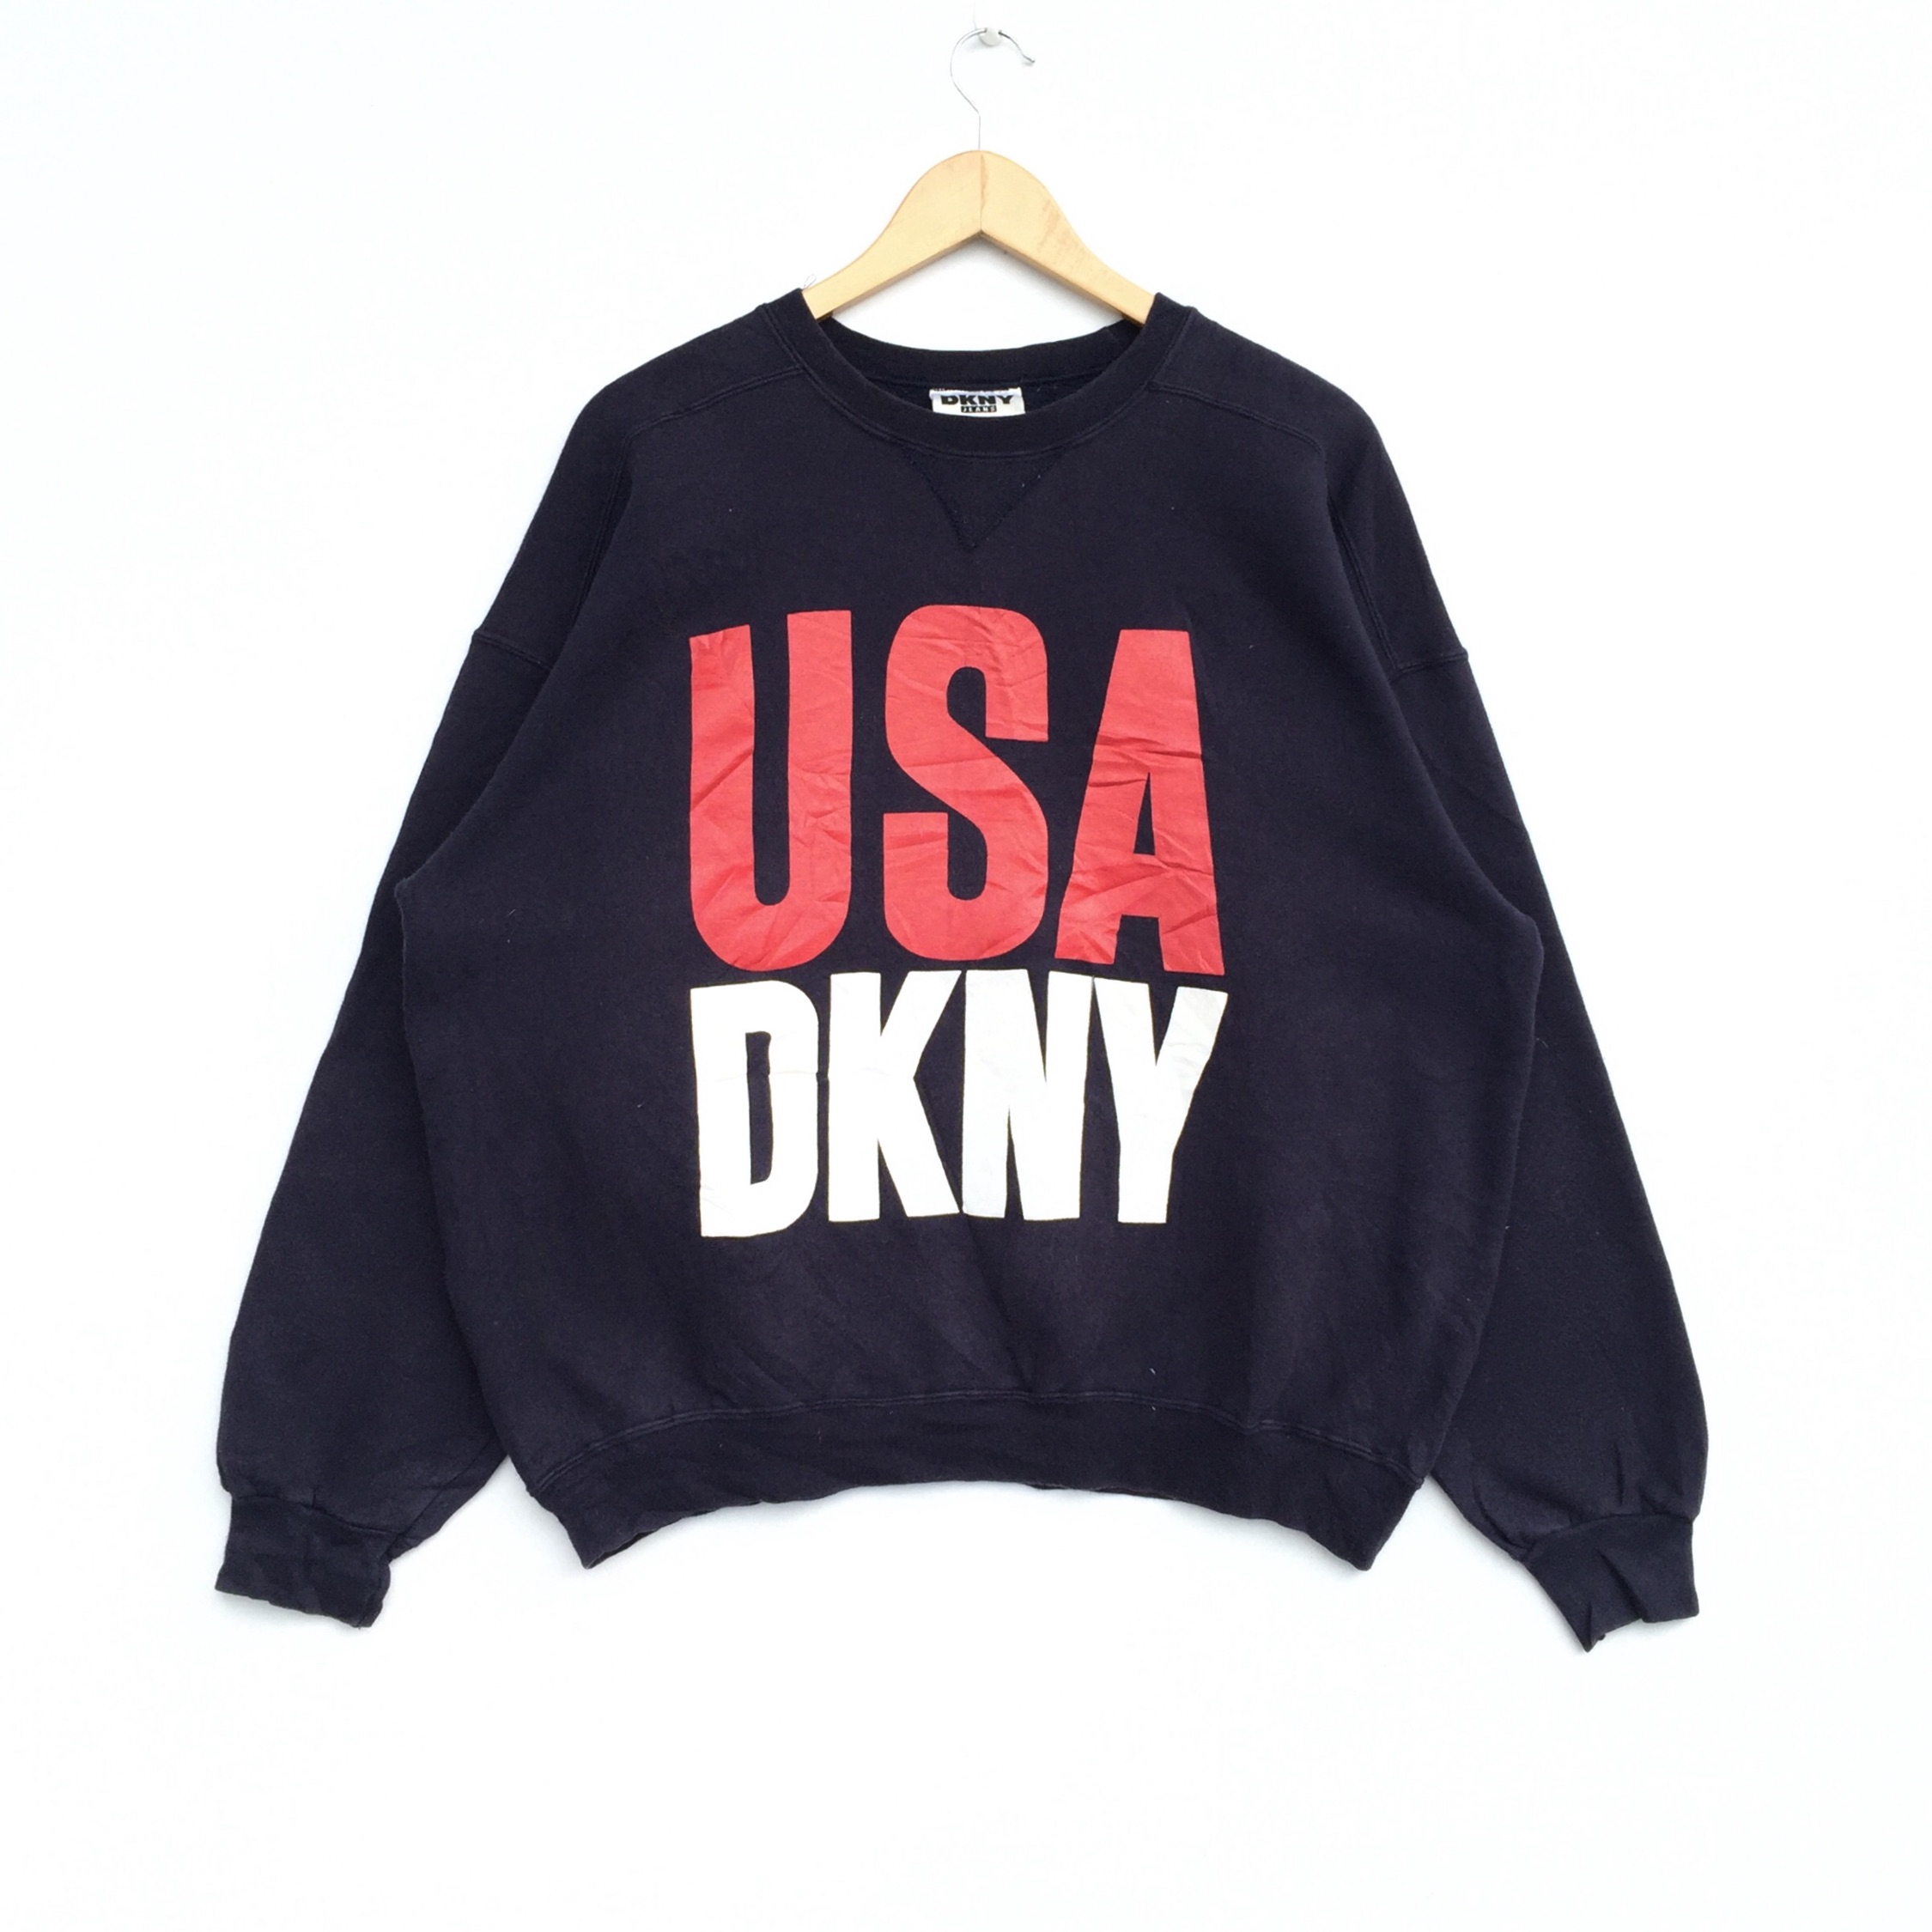 Vintage Dkny Usa Spell Out Printed Logo Sweatshirt